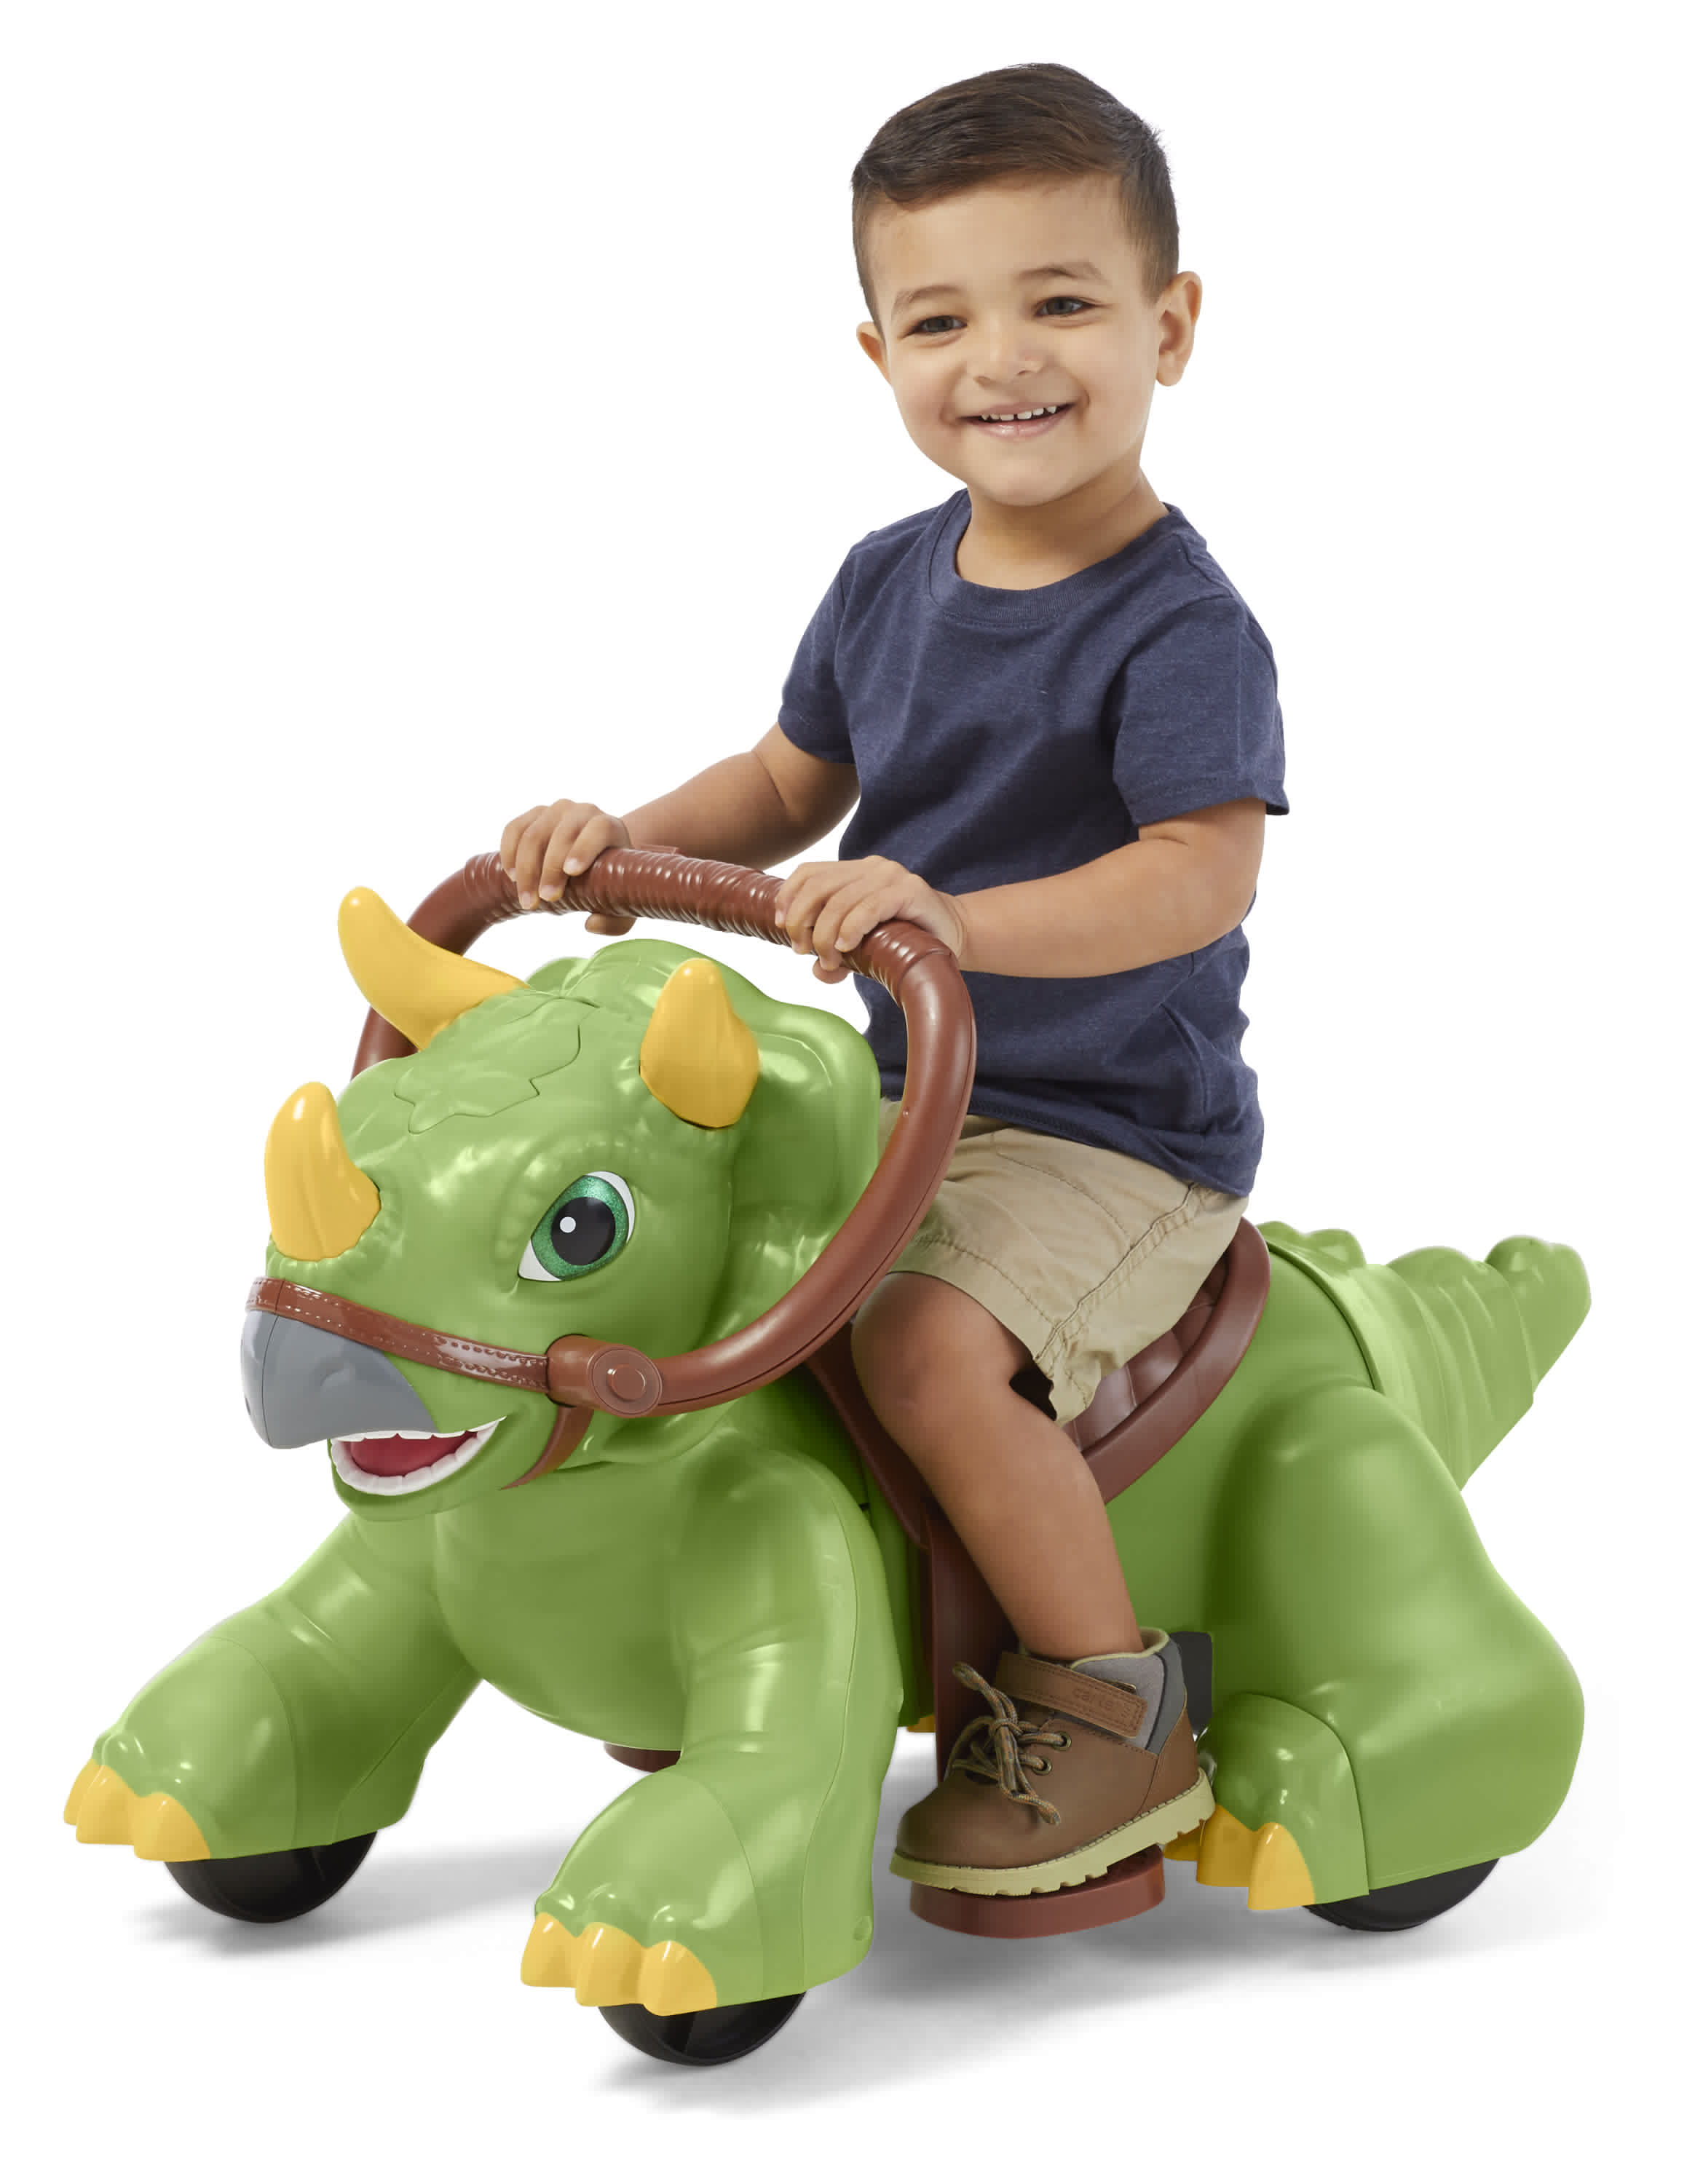 Kid Trax Rideamals Dinosaur Ride-On Toy